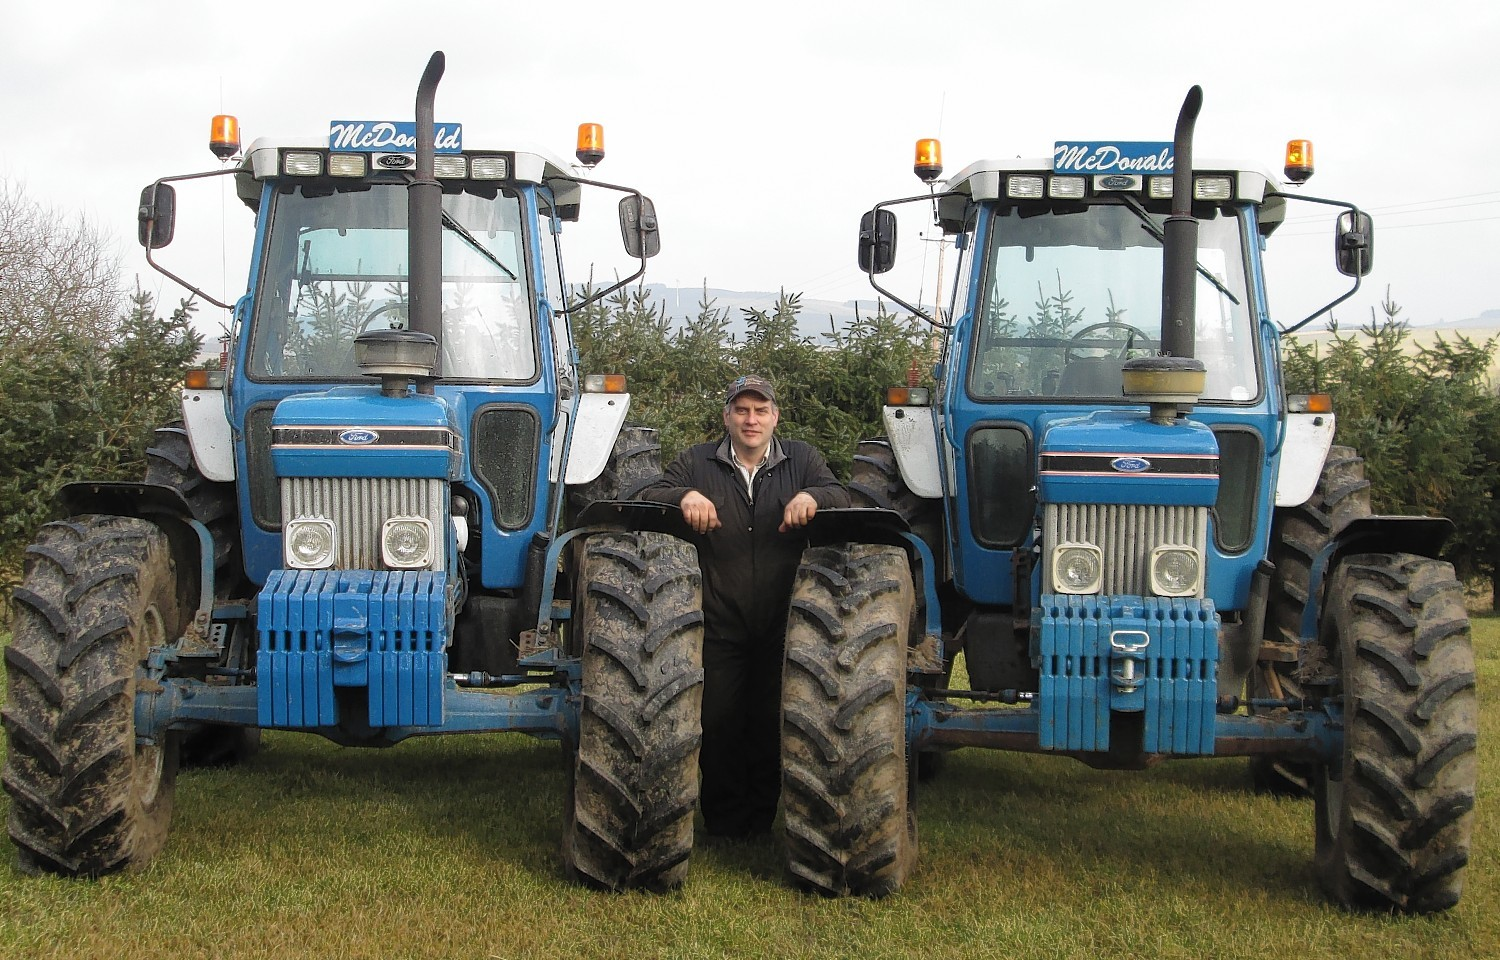 Ian McDonald and friends ploughed continuously for 24 hours